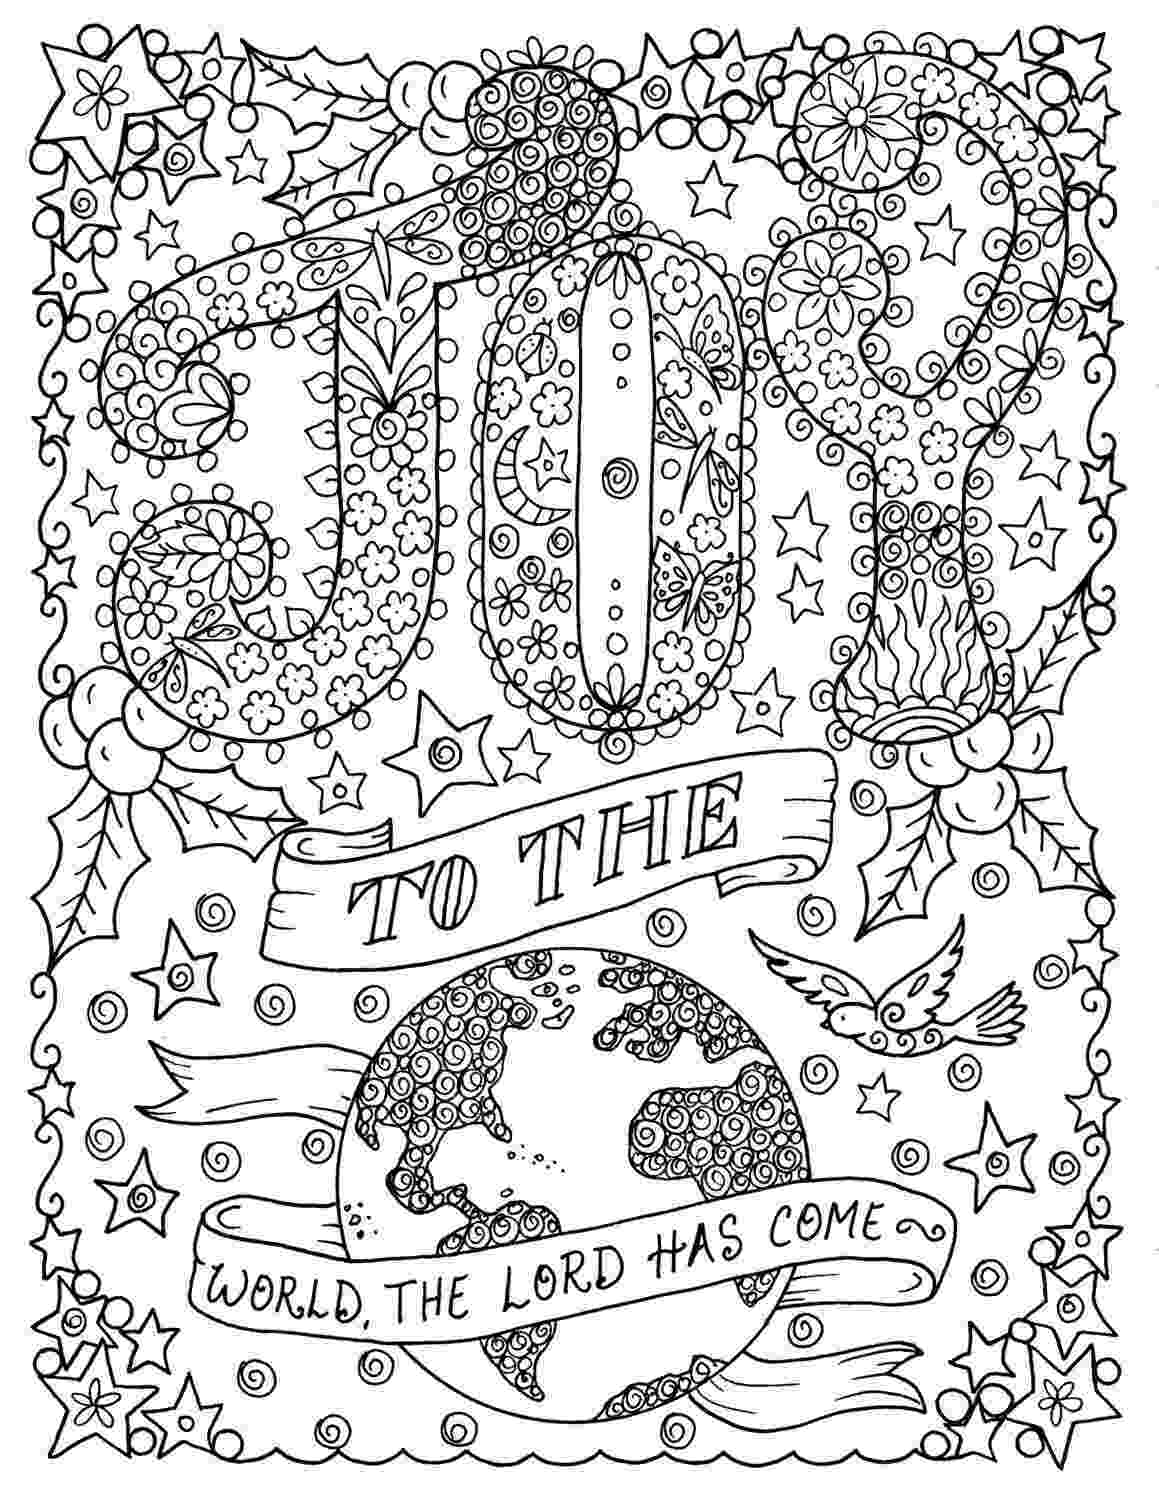 christmas colouring pages for older kids christmas colouring pages free to print and colour christmas older colouring kids for pages